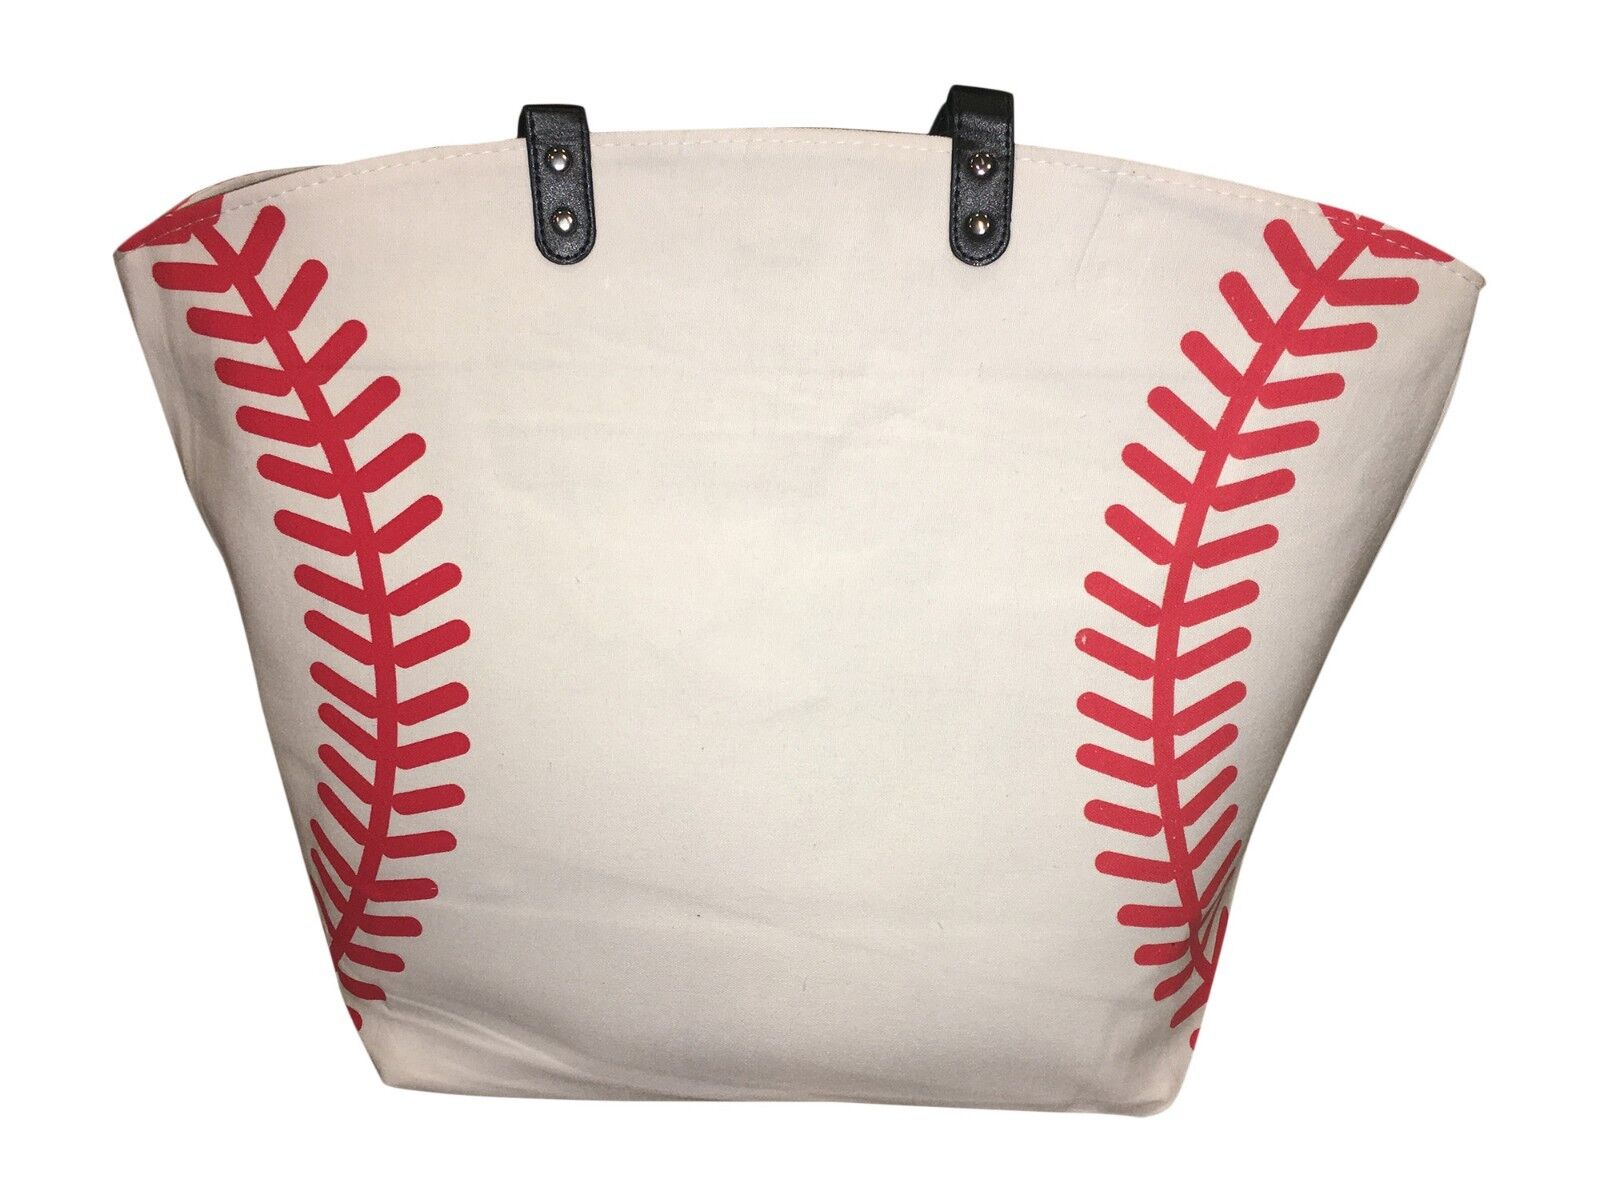 Baseball Canvas Tote Bag, White w Red Seams, Best baseball m